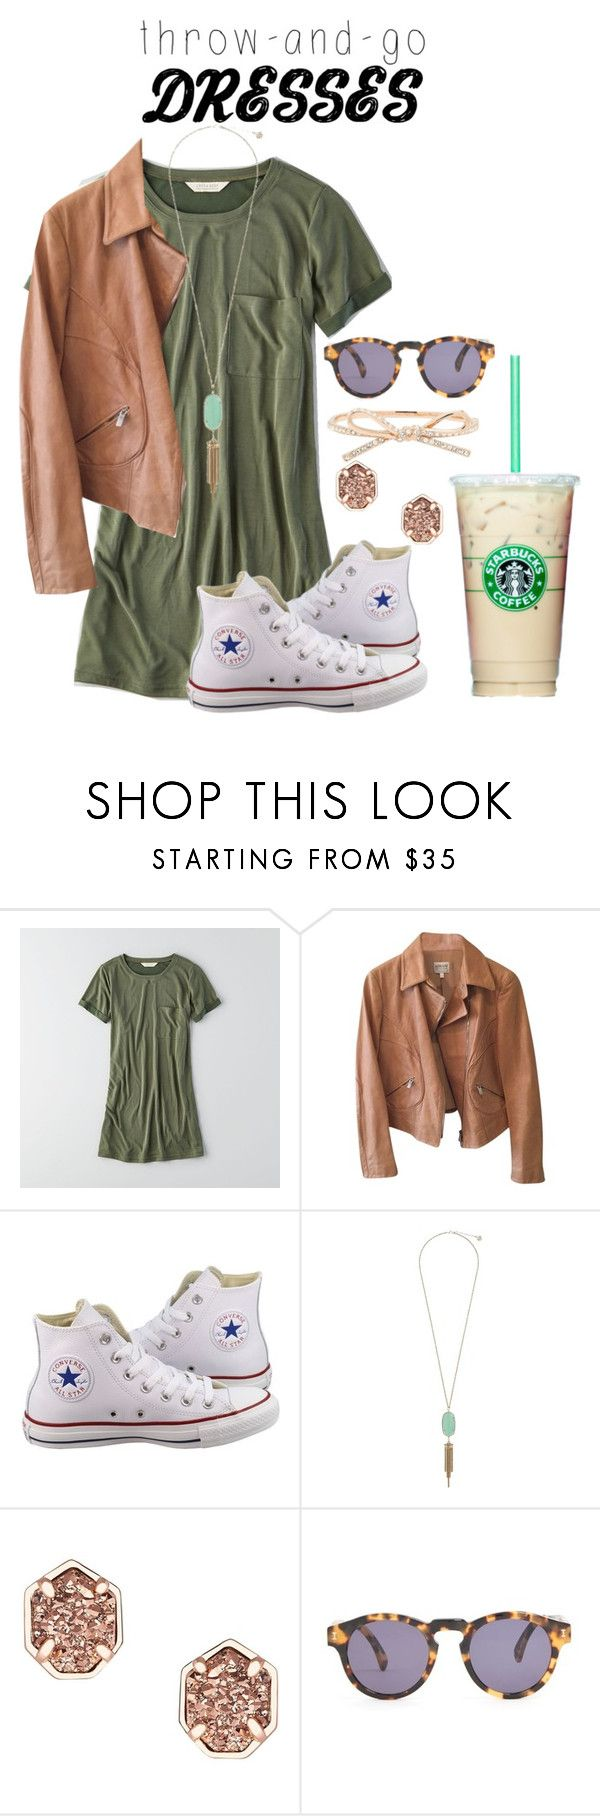 """""""Summer date: Starbucks and movie"""" by flroasburn ❤ liked on Polyvore featuring American Eagle Outfitters, Armani Collezioni, Converse, Kendra Scott, Illesteva and Kate Spade"""